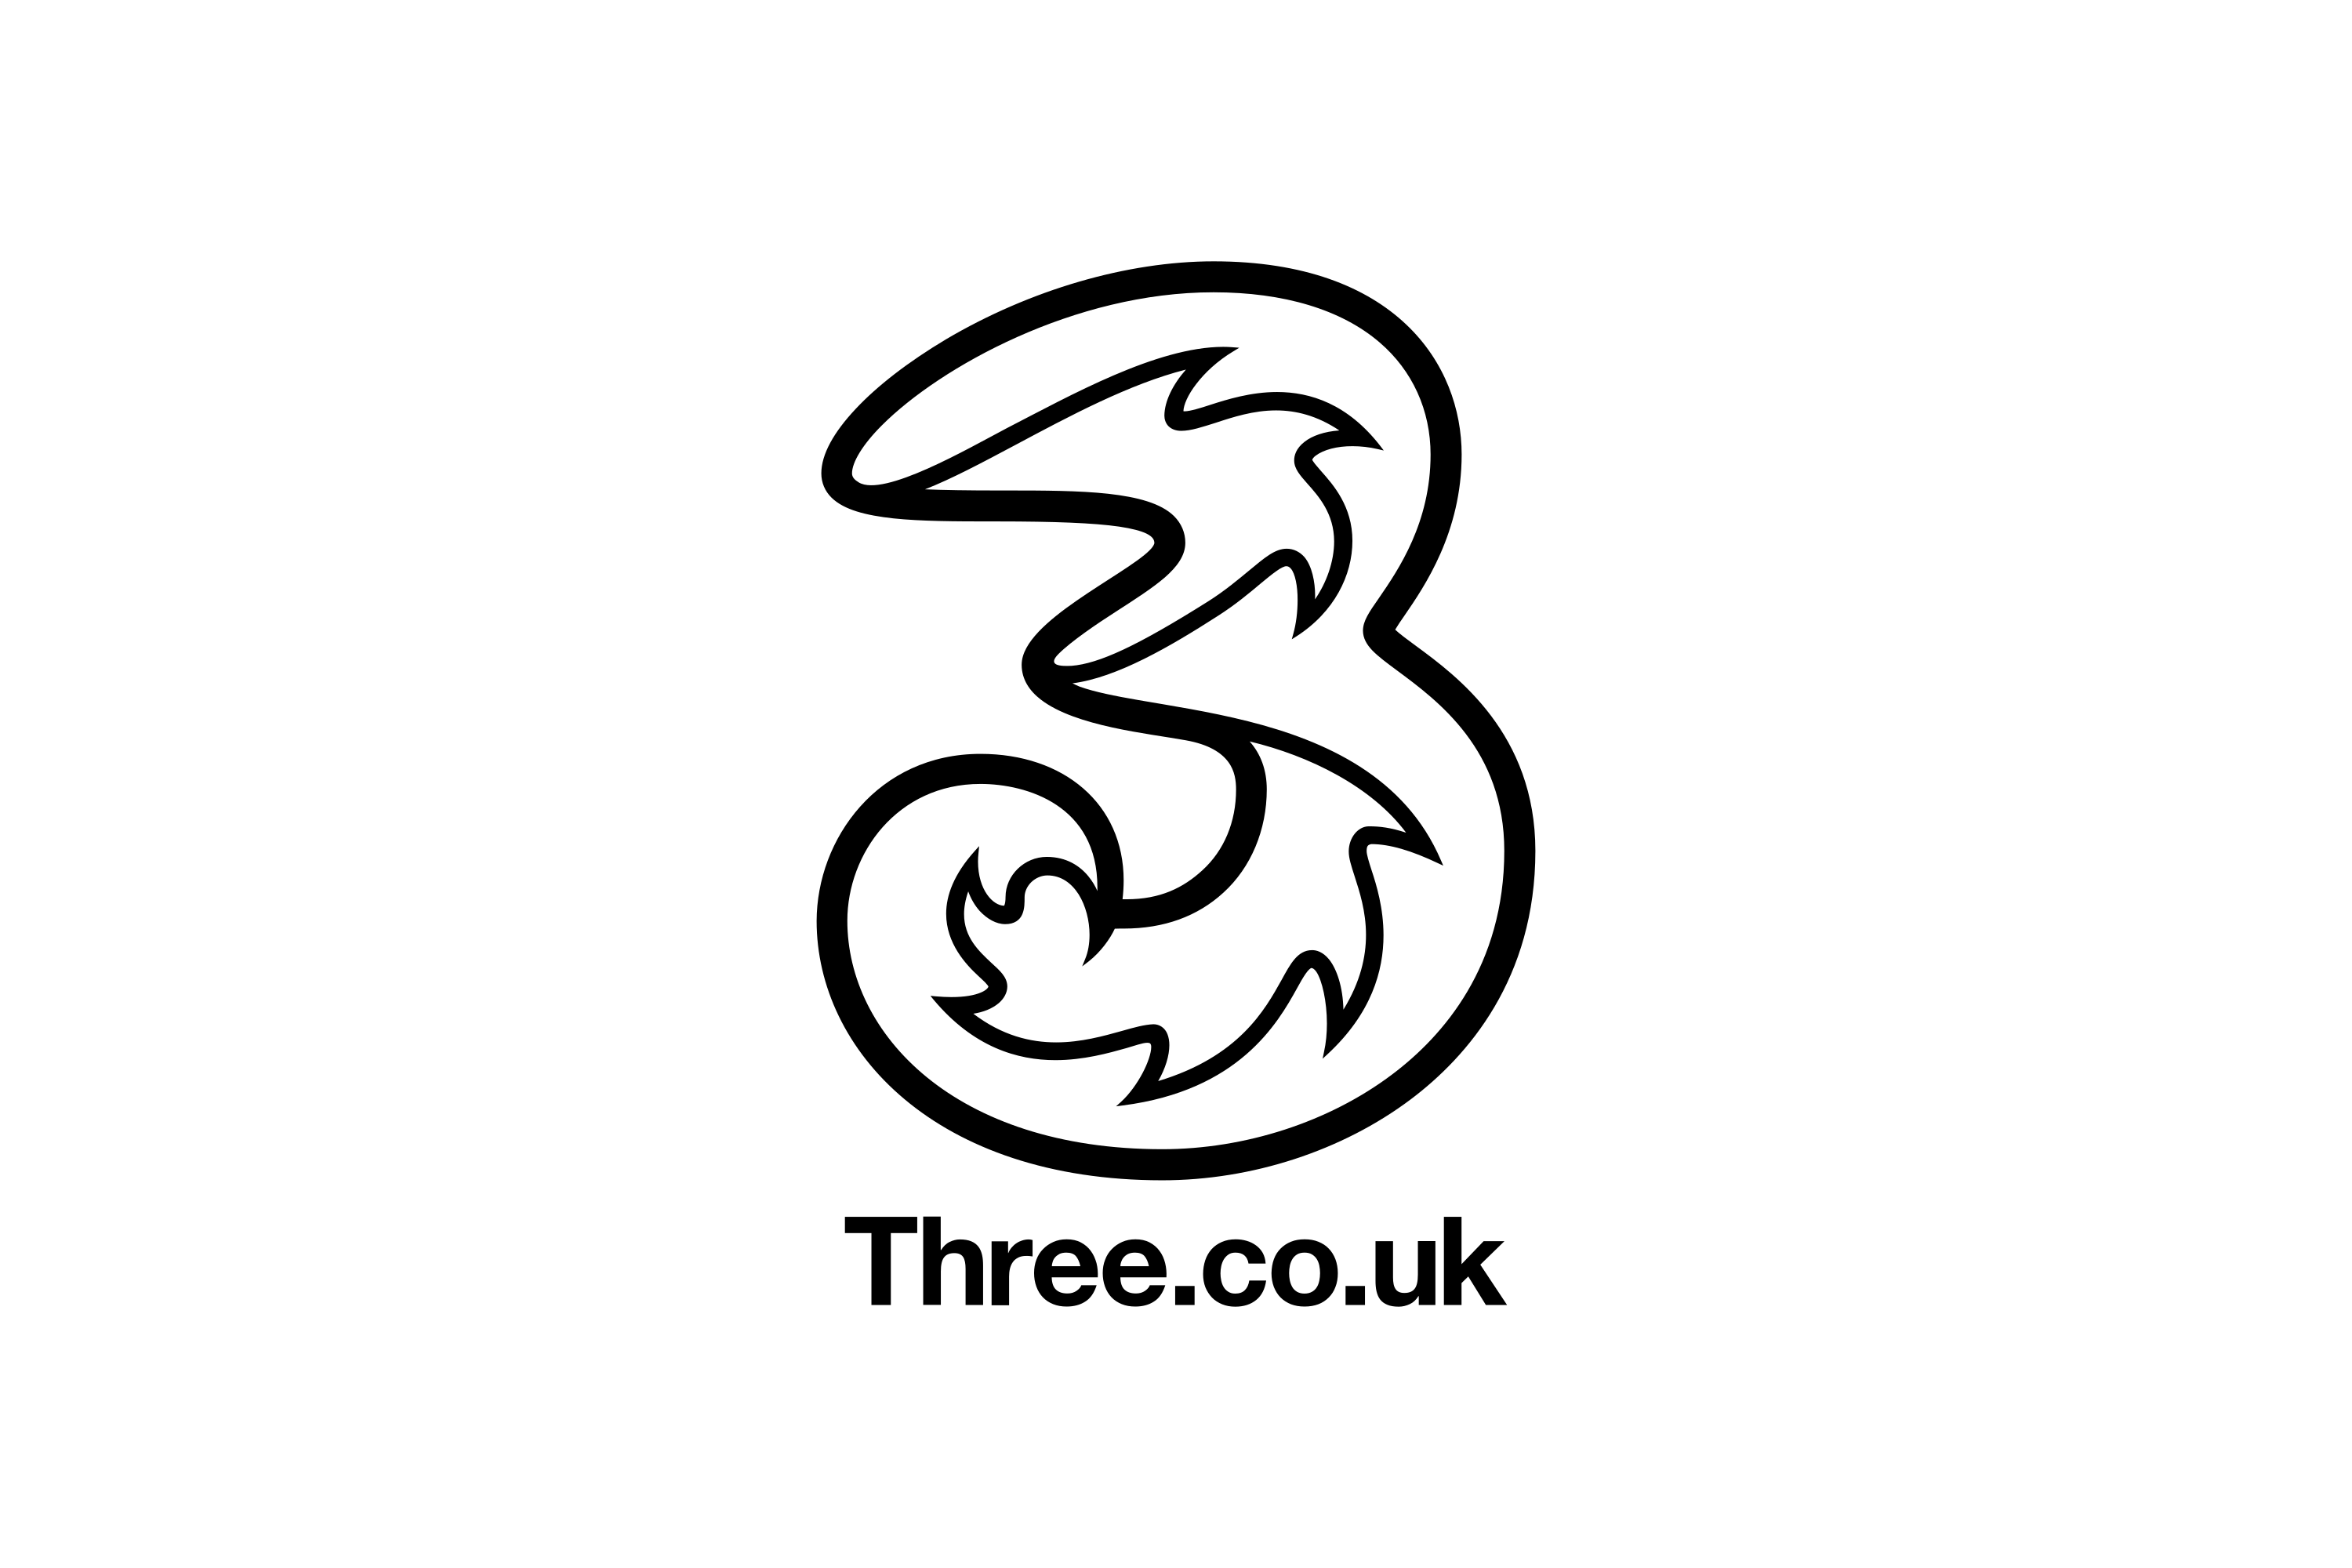 Download Three UK Logo in SVG Vector or PNG File Format